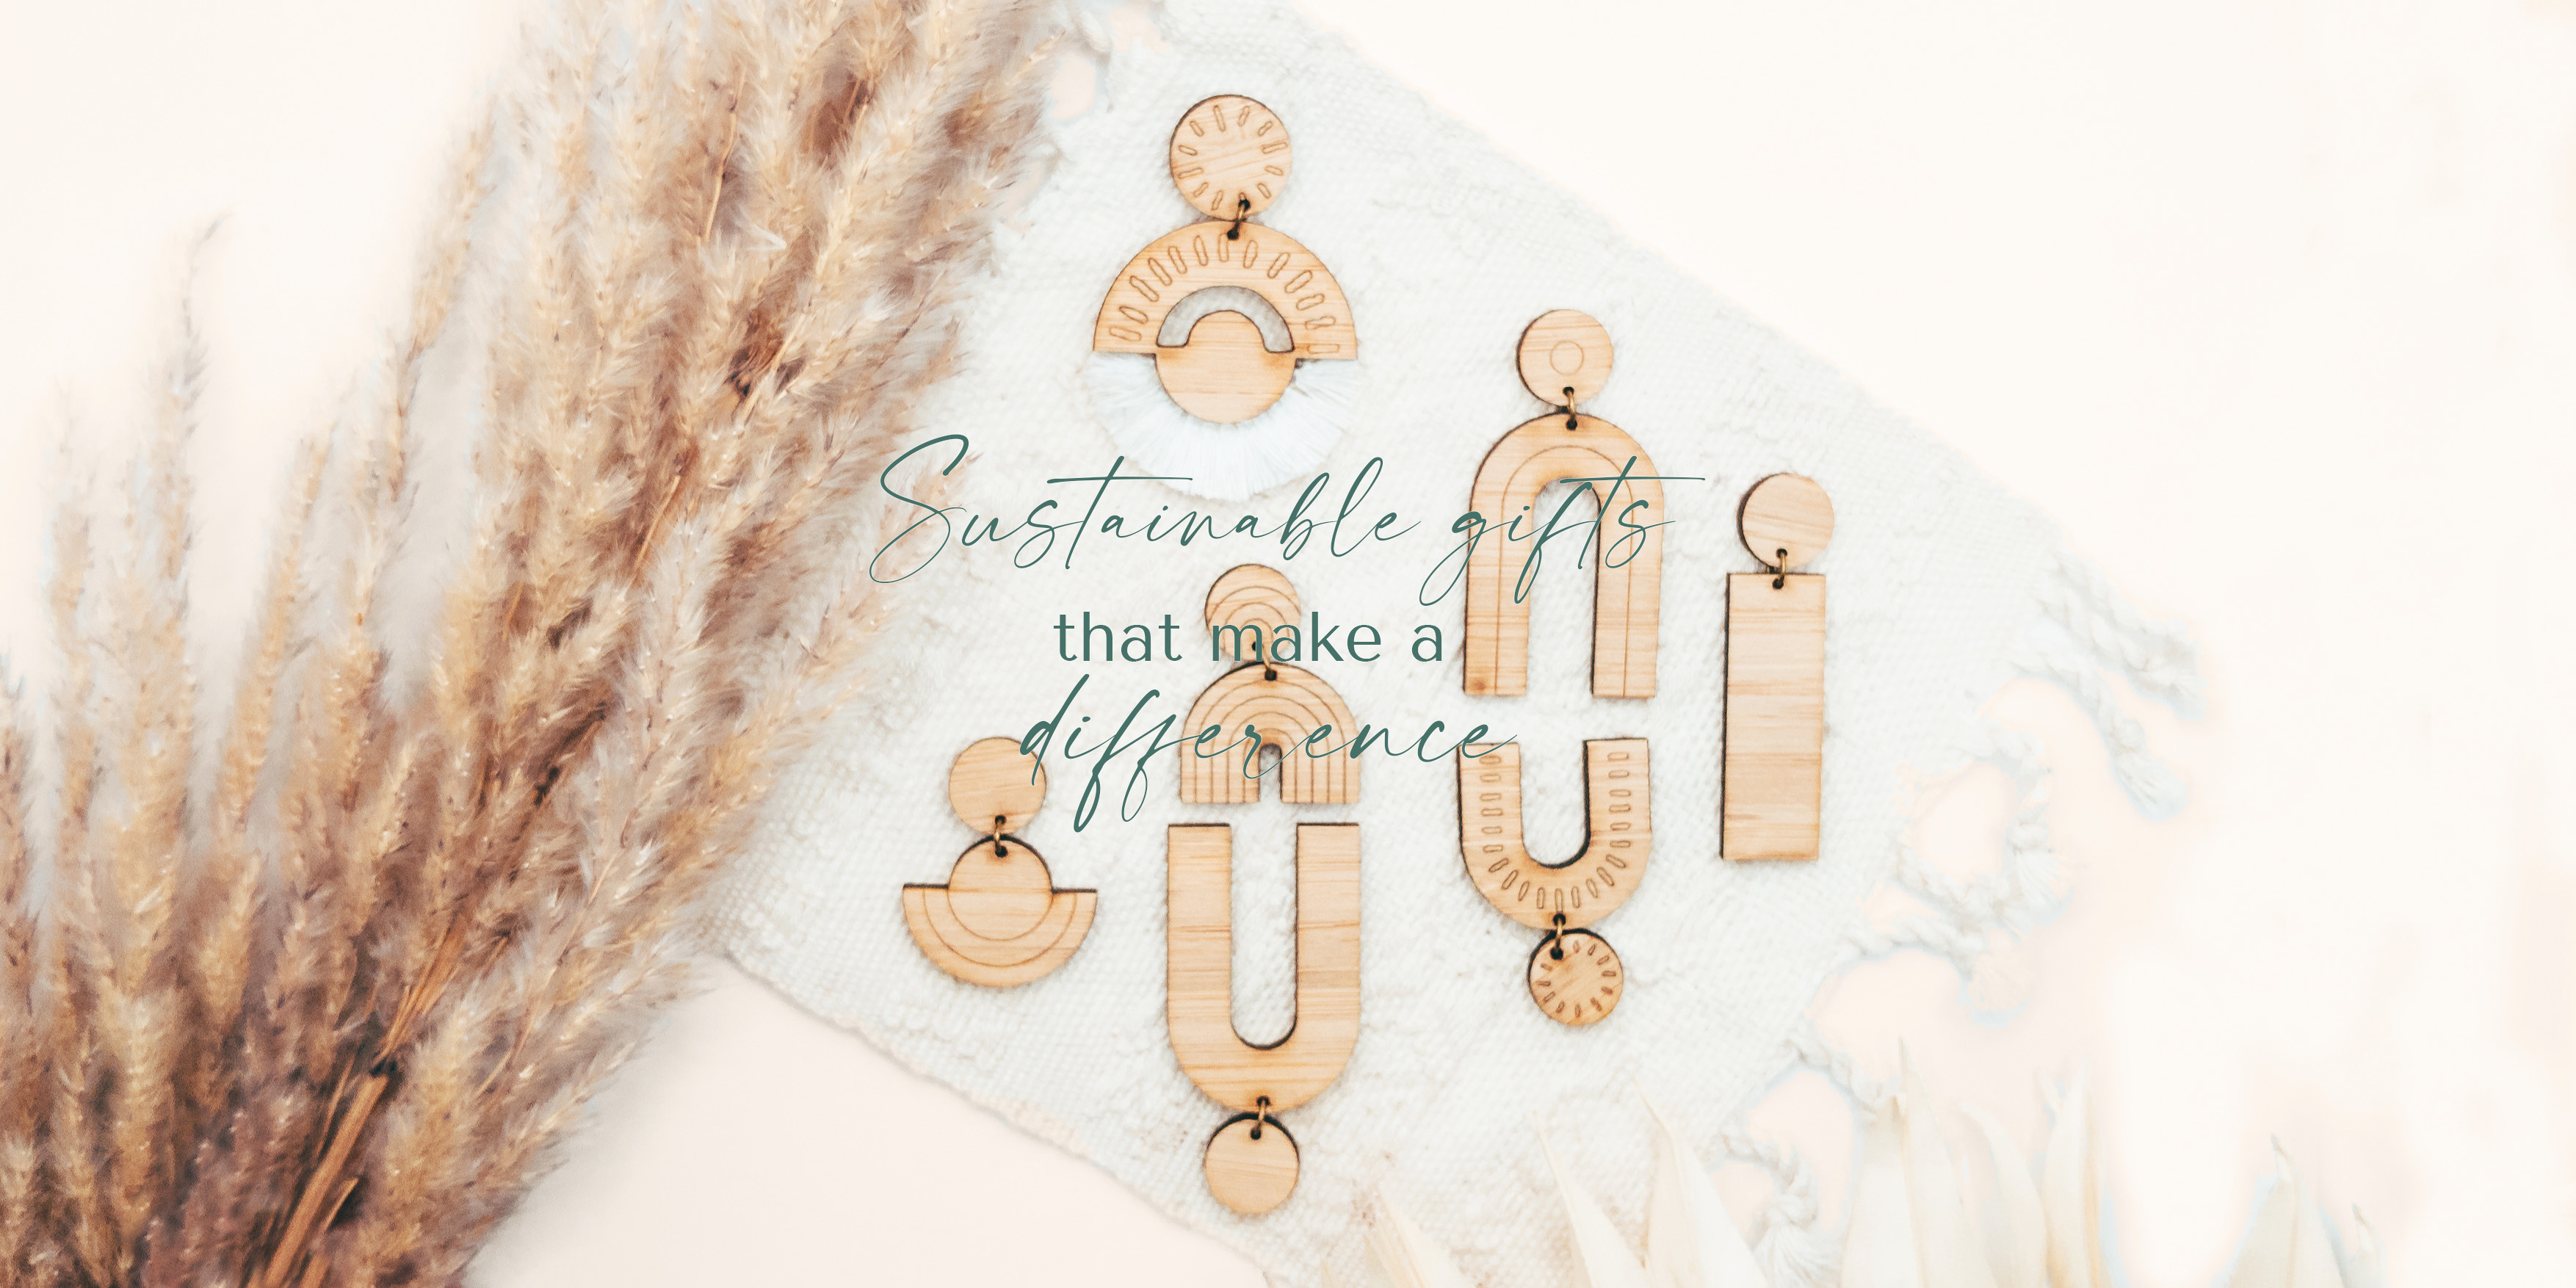 sustainable fashion brand - handmade bamboo earrings and gift